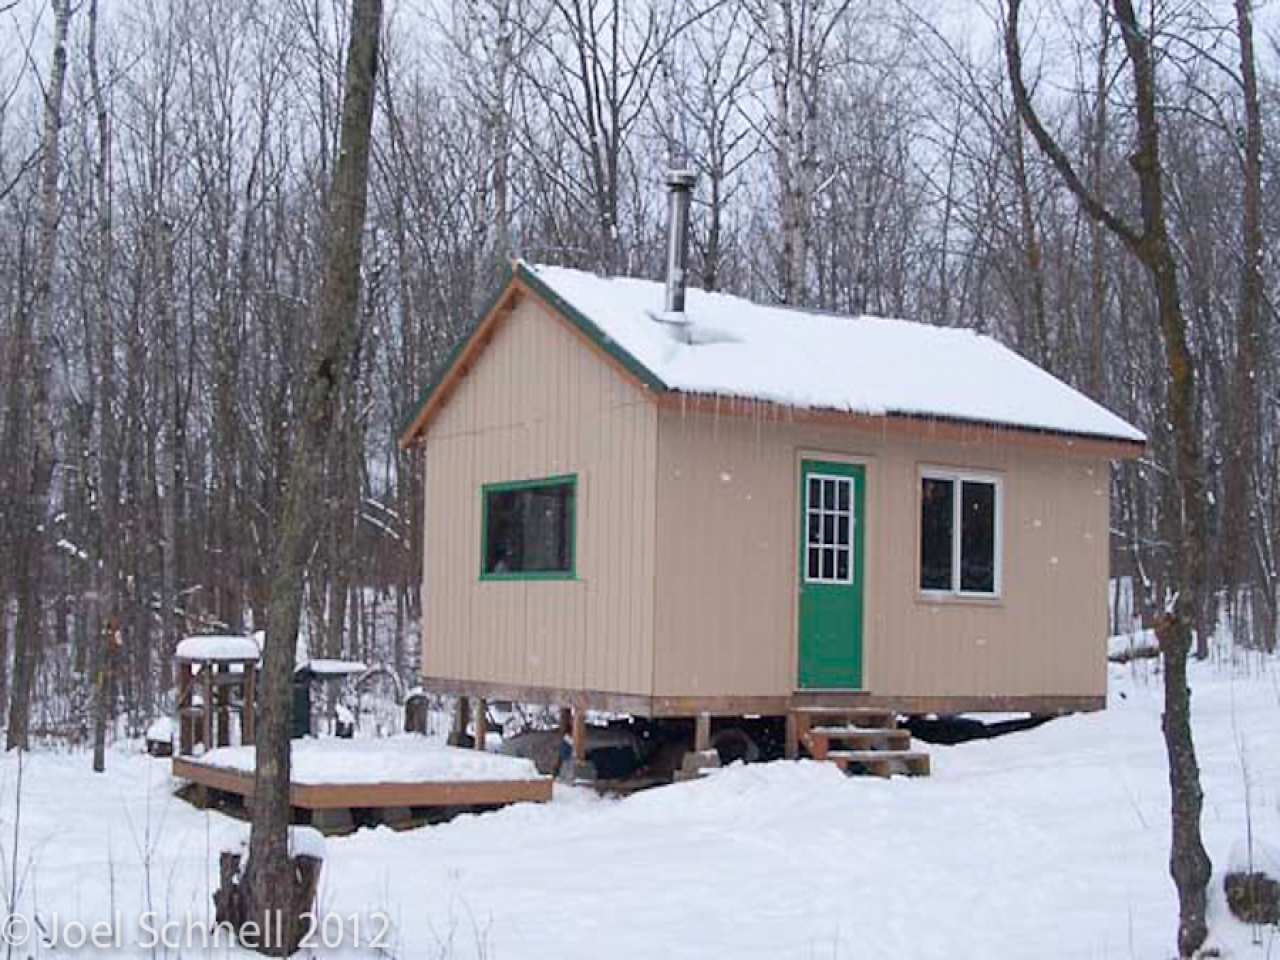 Do It Yourself Cabin Plans Free Small Cabin Plans Small: Building A Hunting Cabin In The Northwoods Ruffed Grouse